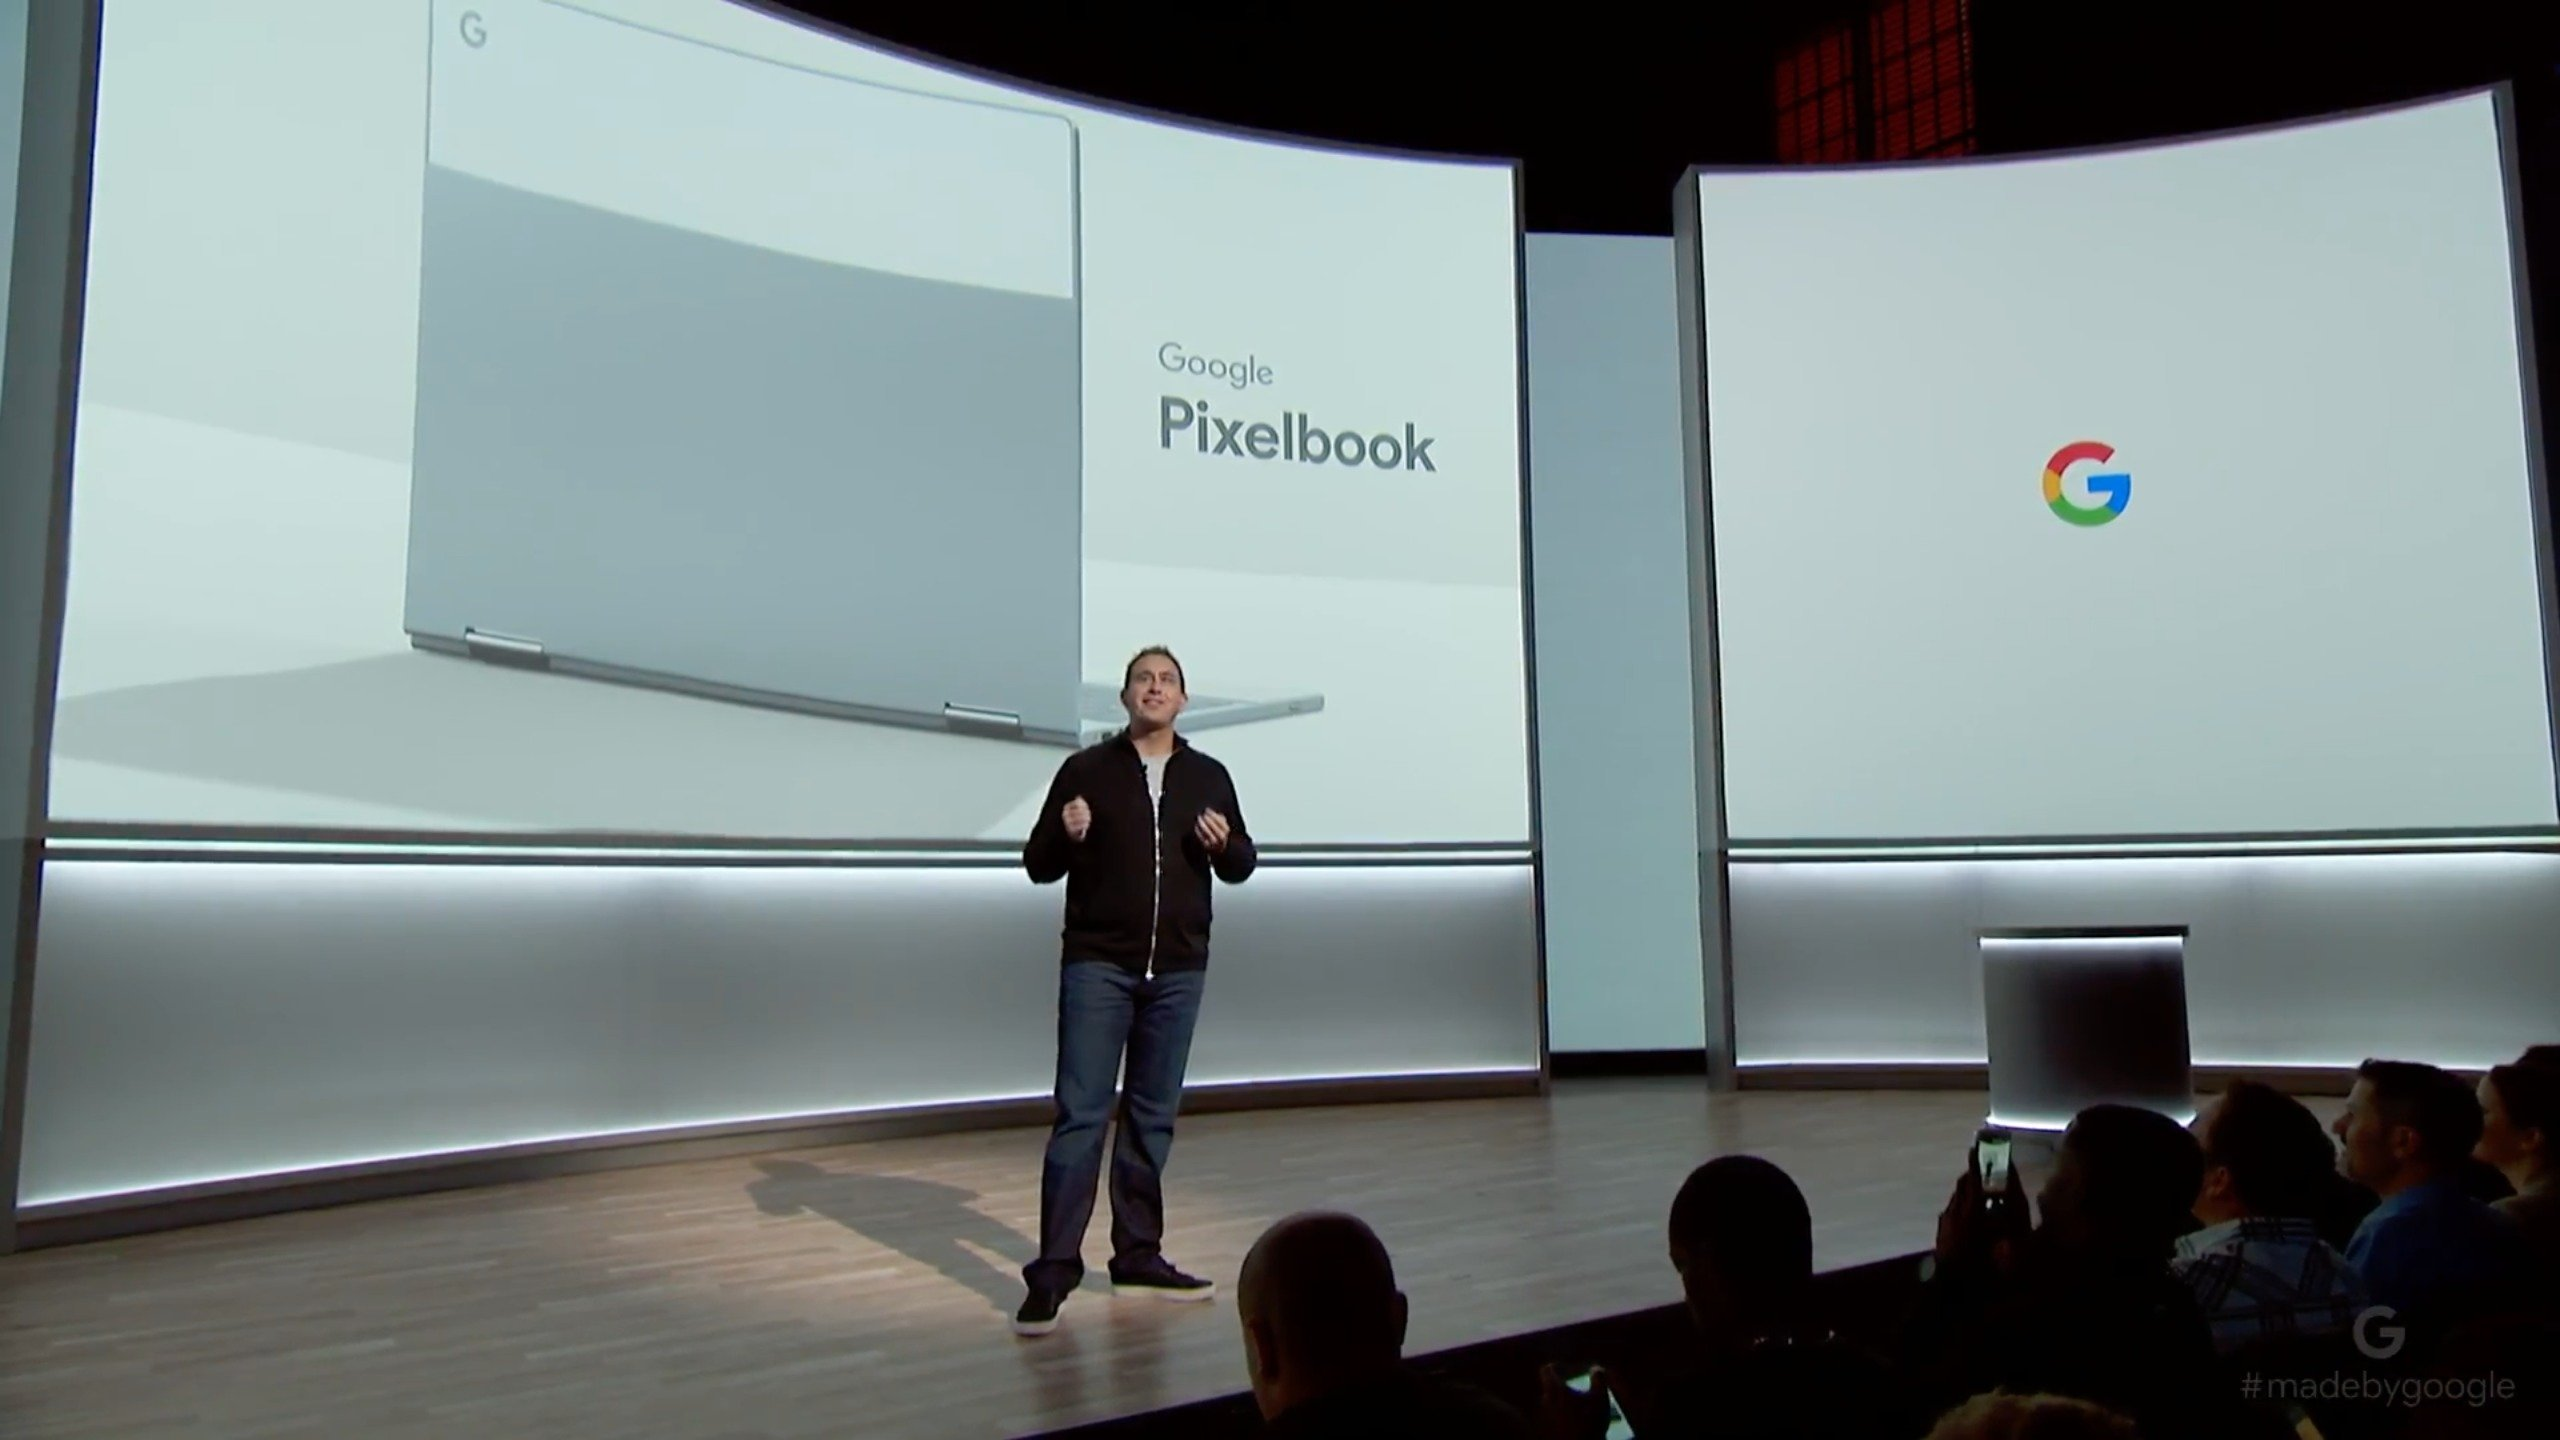 Google Pixelbook 2 Release Date and Price